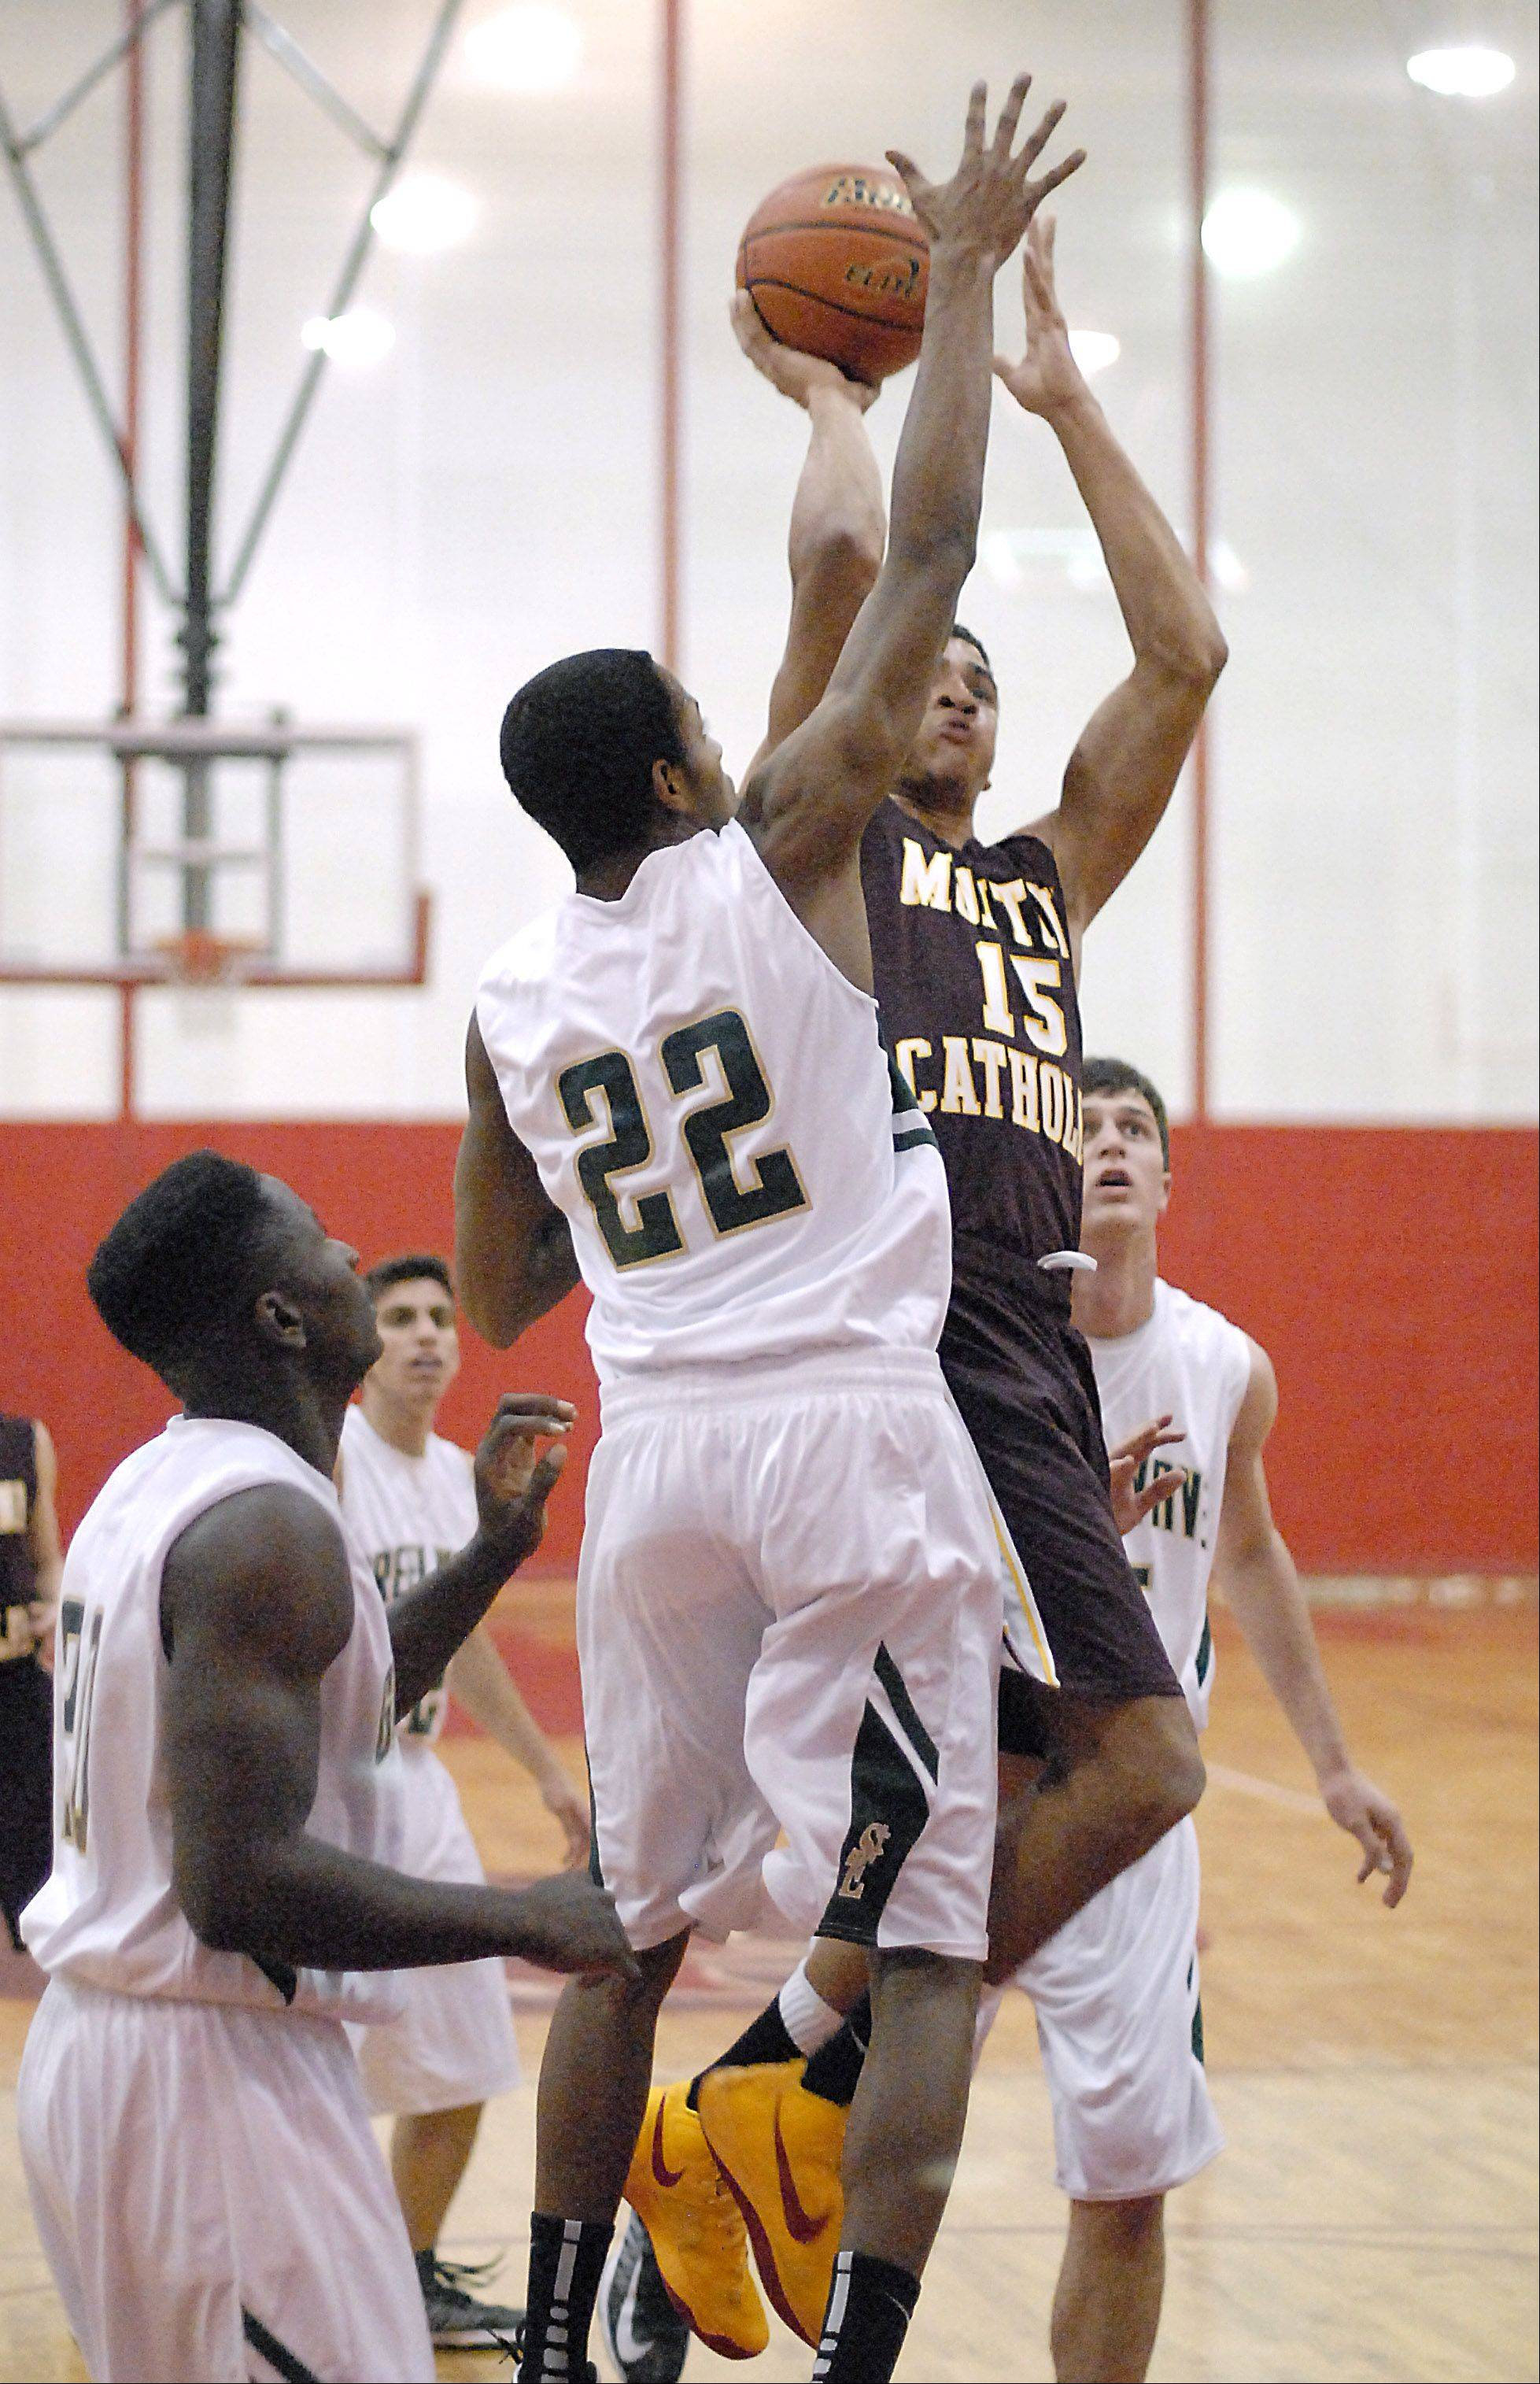 St. Edward's Adrian Ponce attempts to block a shot by Montini's Simmie Cobbs.